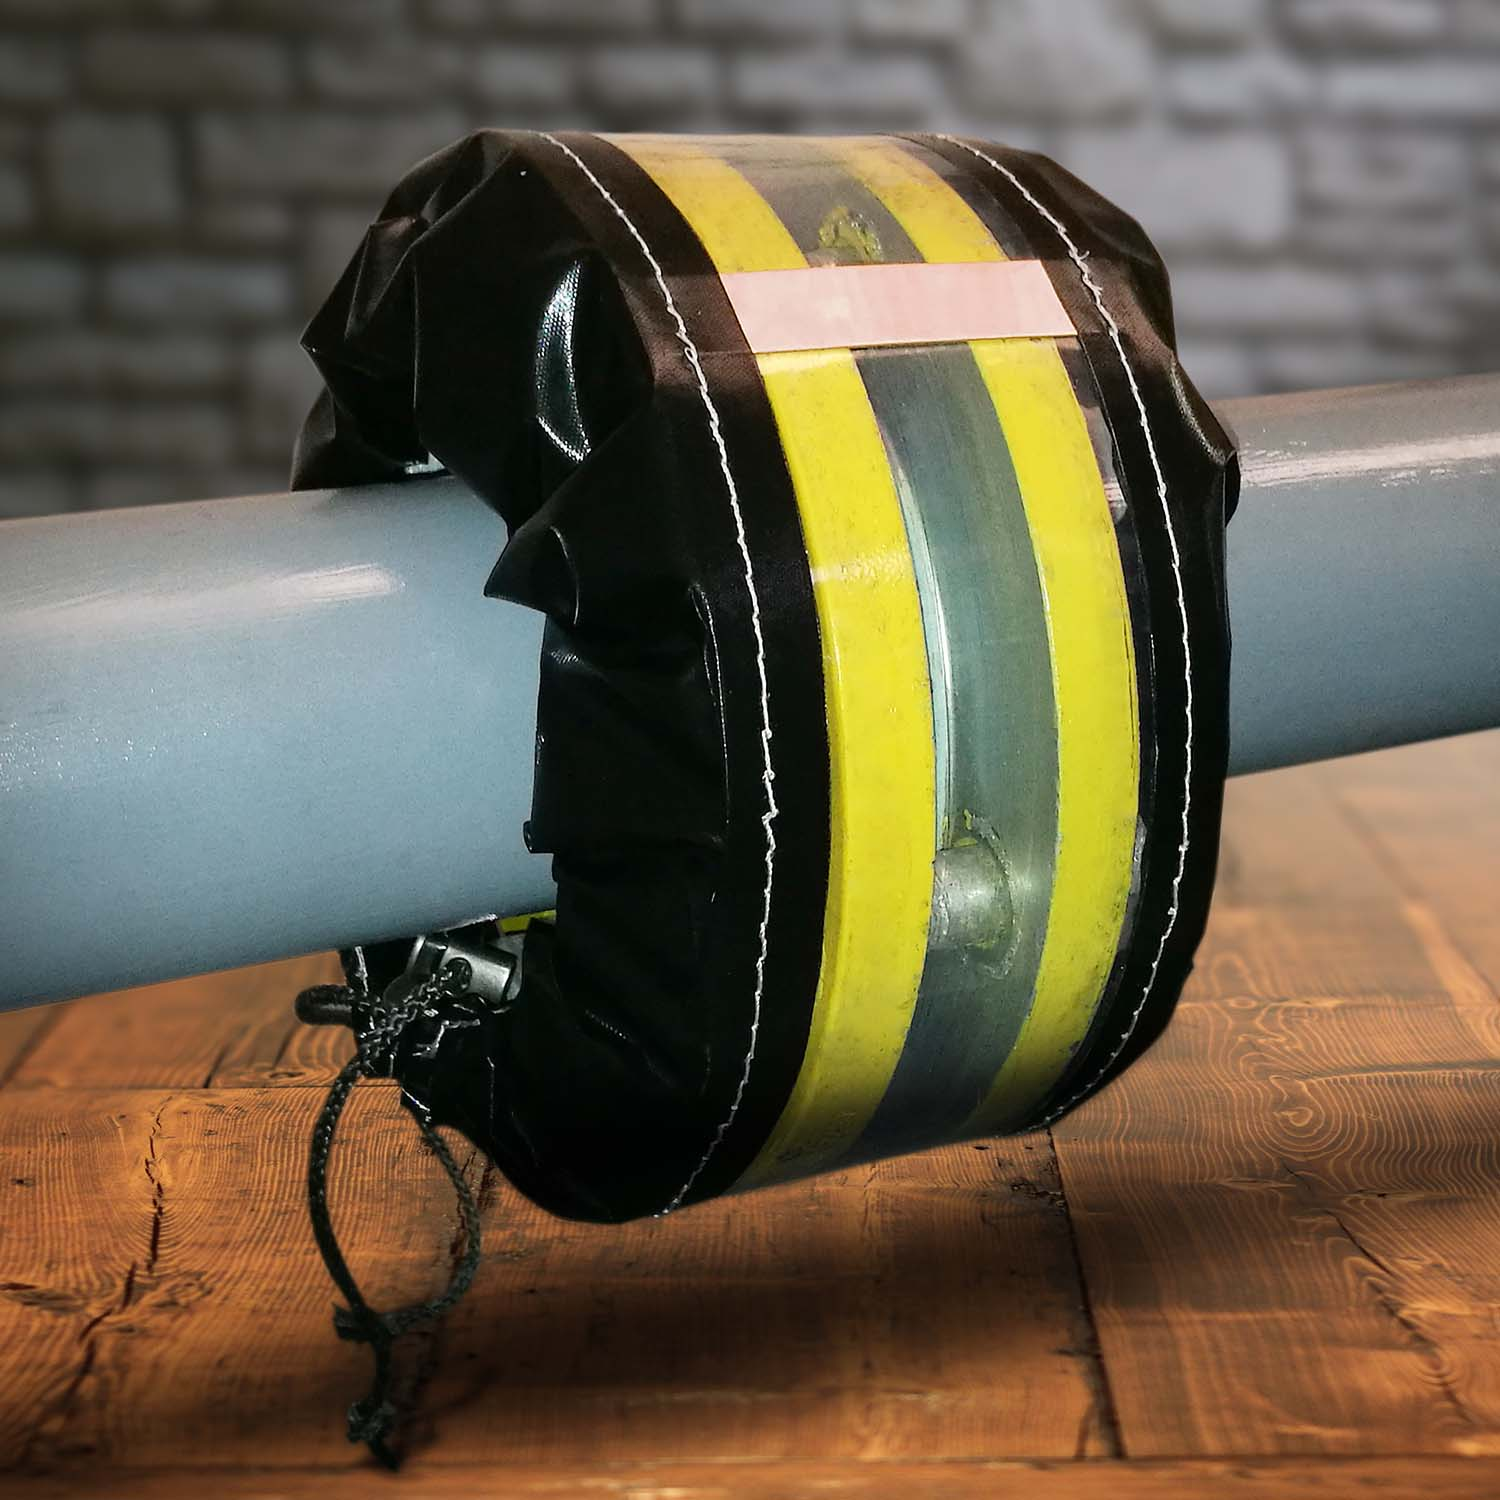 FLANGE COVER SAFECAP TFE-B-AS/GARD for ATEX areas